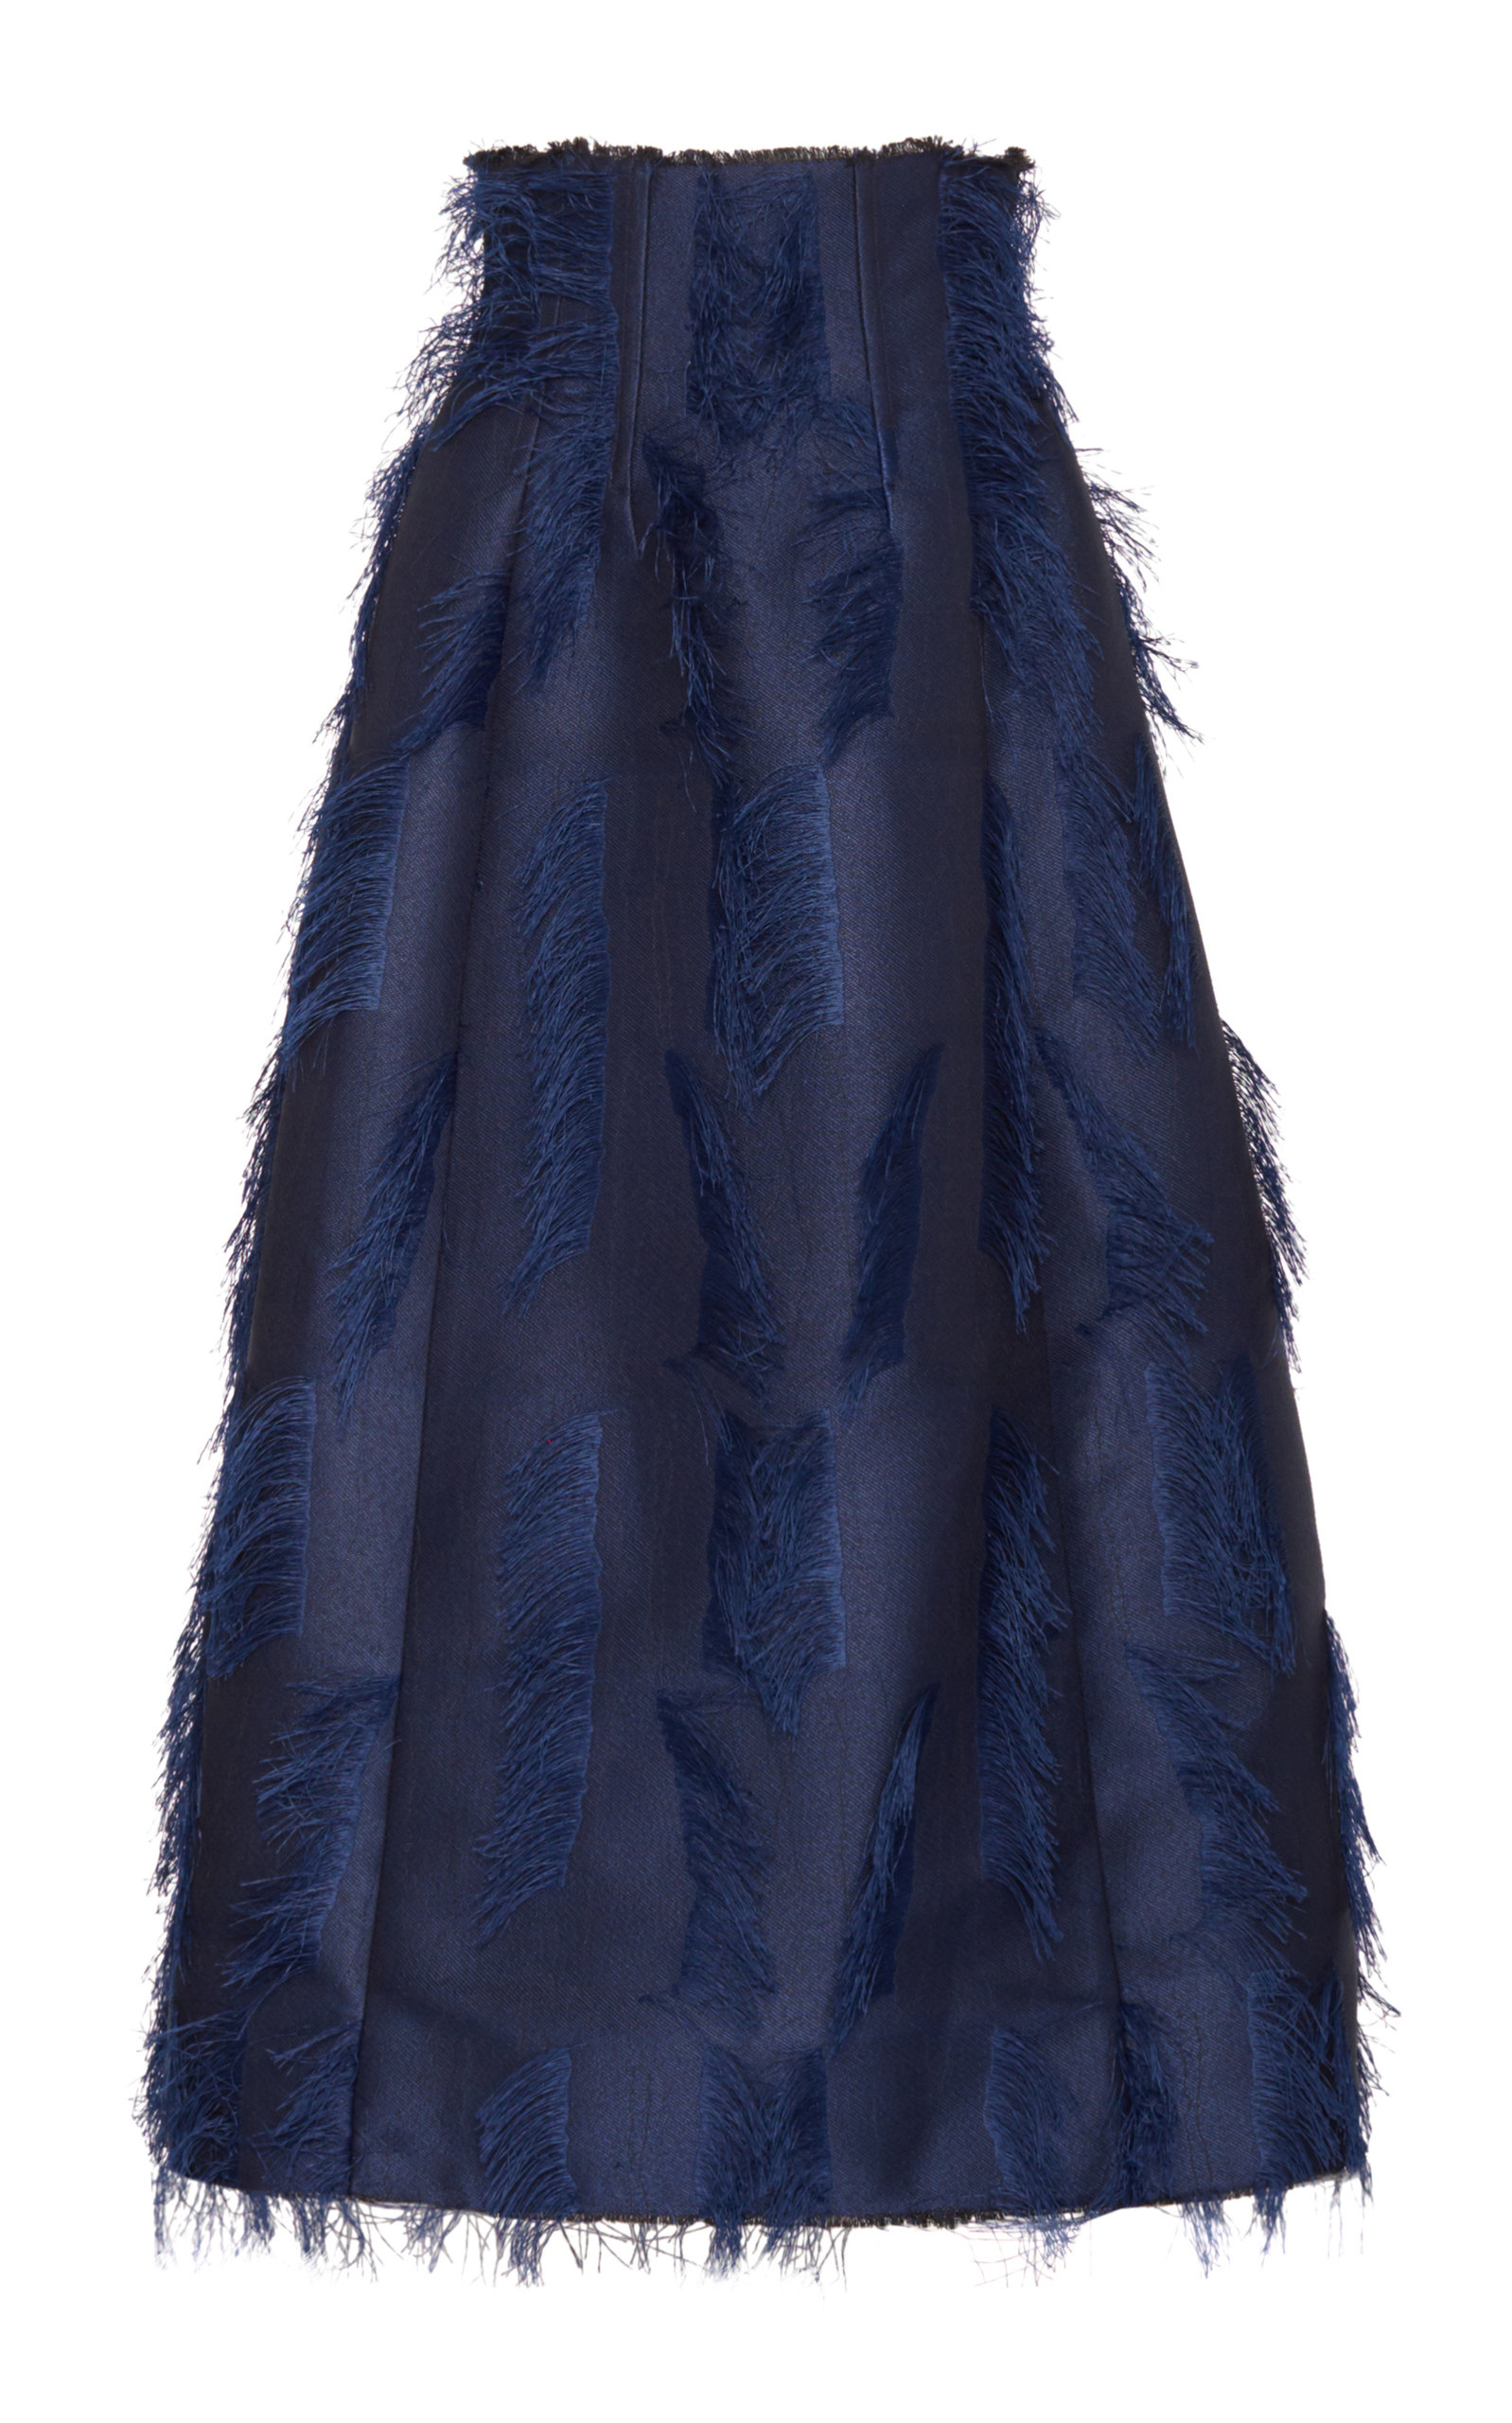 MARINA MOSCONE Deconstructed Dirndl Skirt in Navy